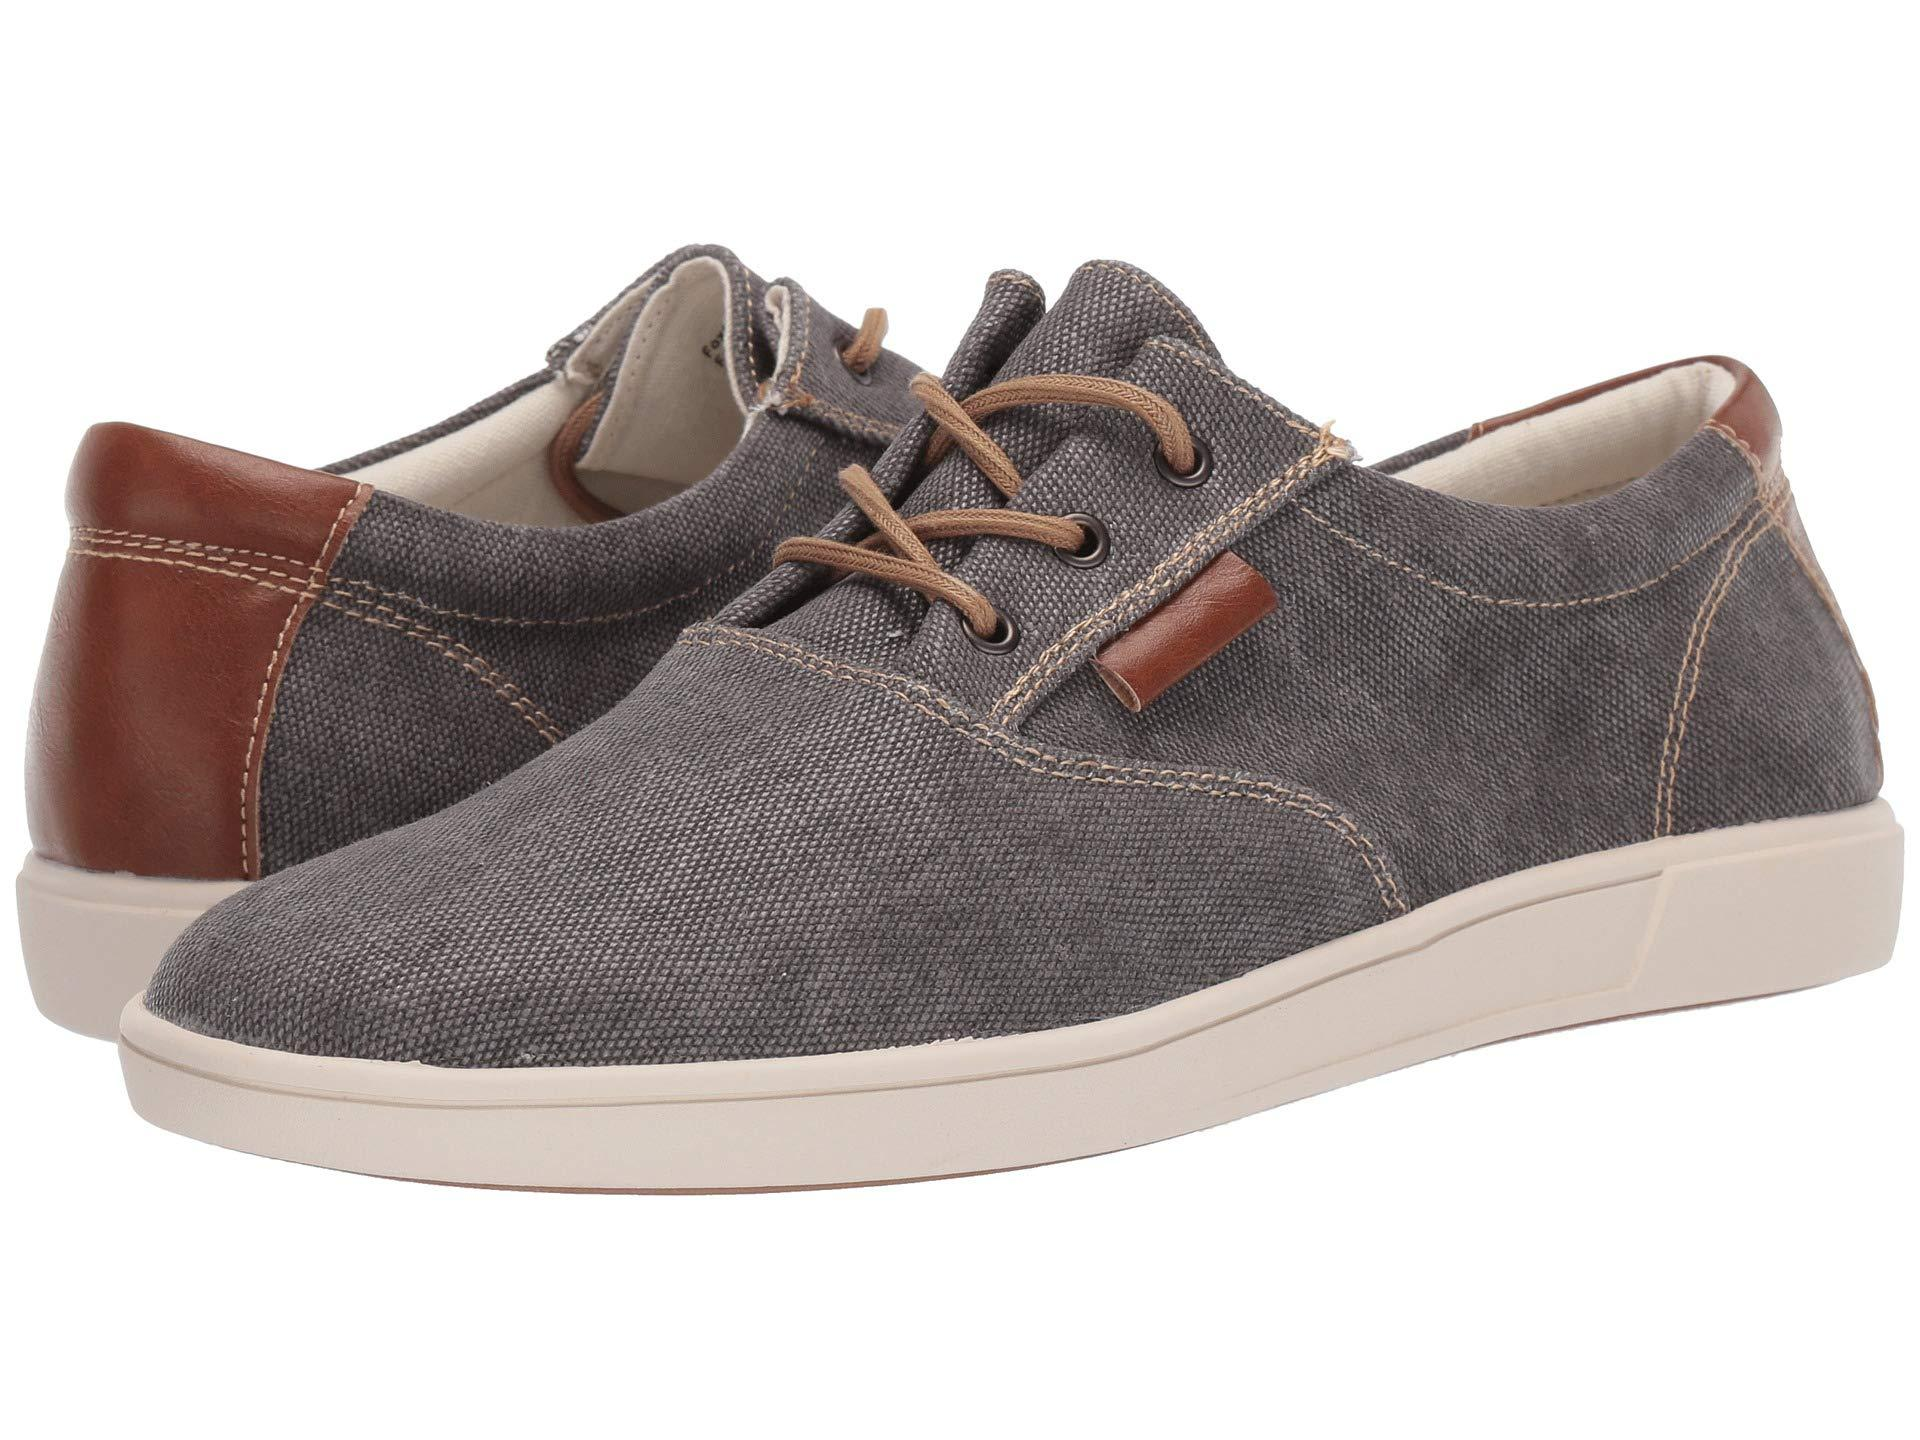 958b3cc6f41 Lyst - Steve Madden Foxton (grey) Men s Lace Up Casual Shoes in Gray ...